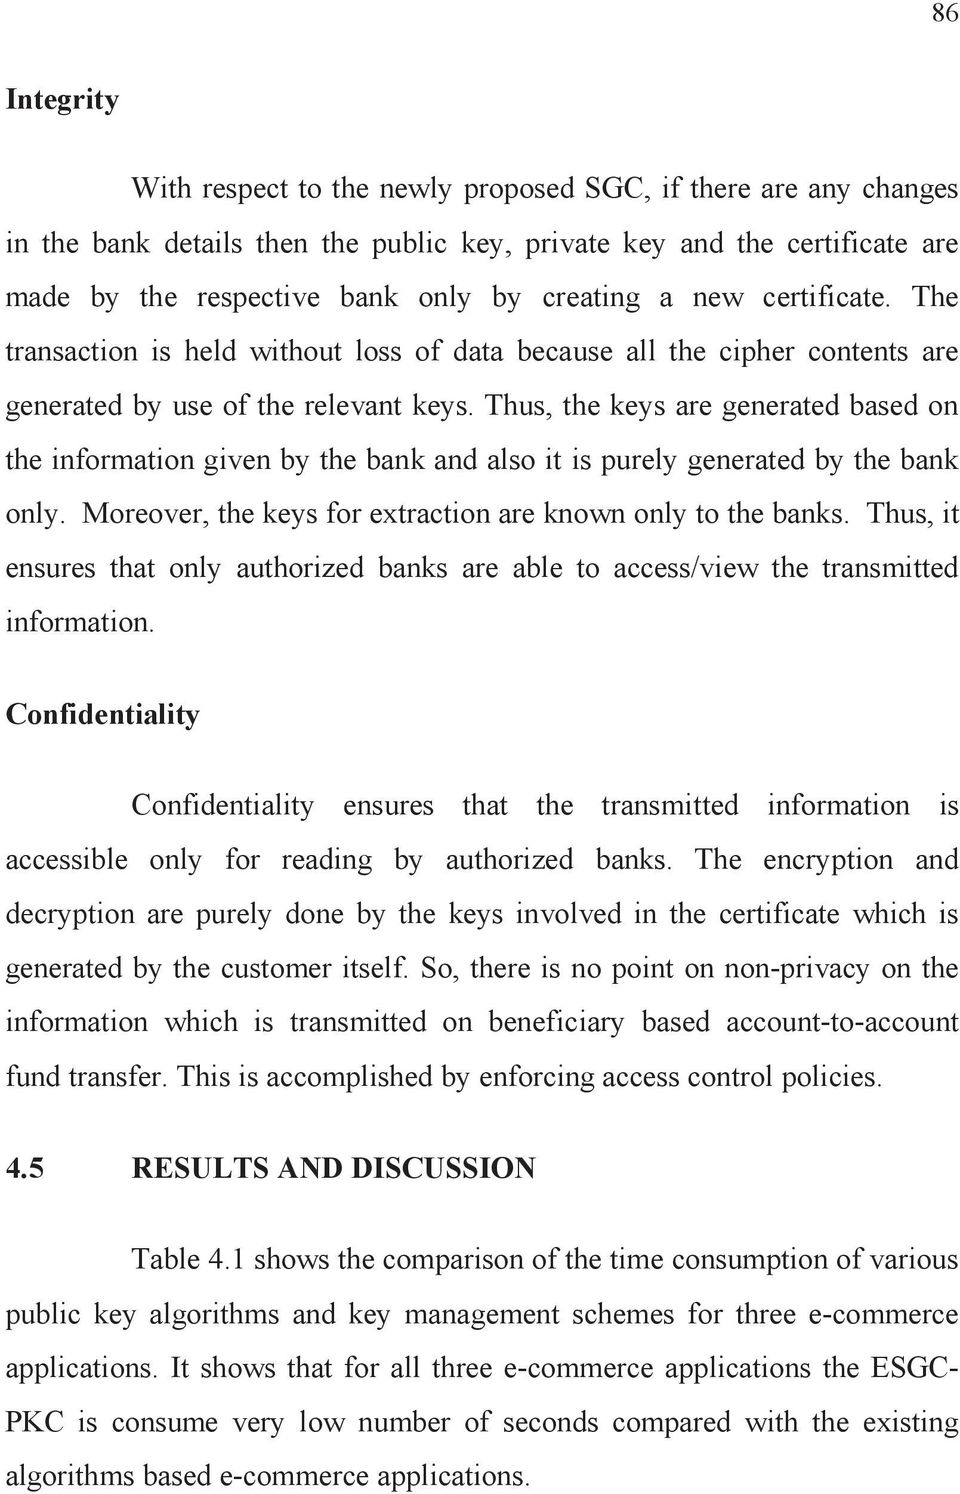 Thus, the keys are generated based on the information given by the bank and also it is purely generated by the bank only. Moreover, the keys for extraction are known only to the banks.